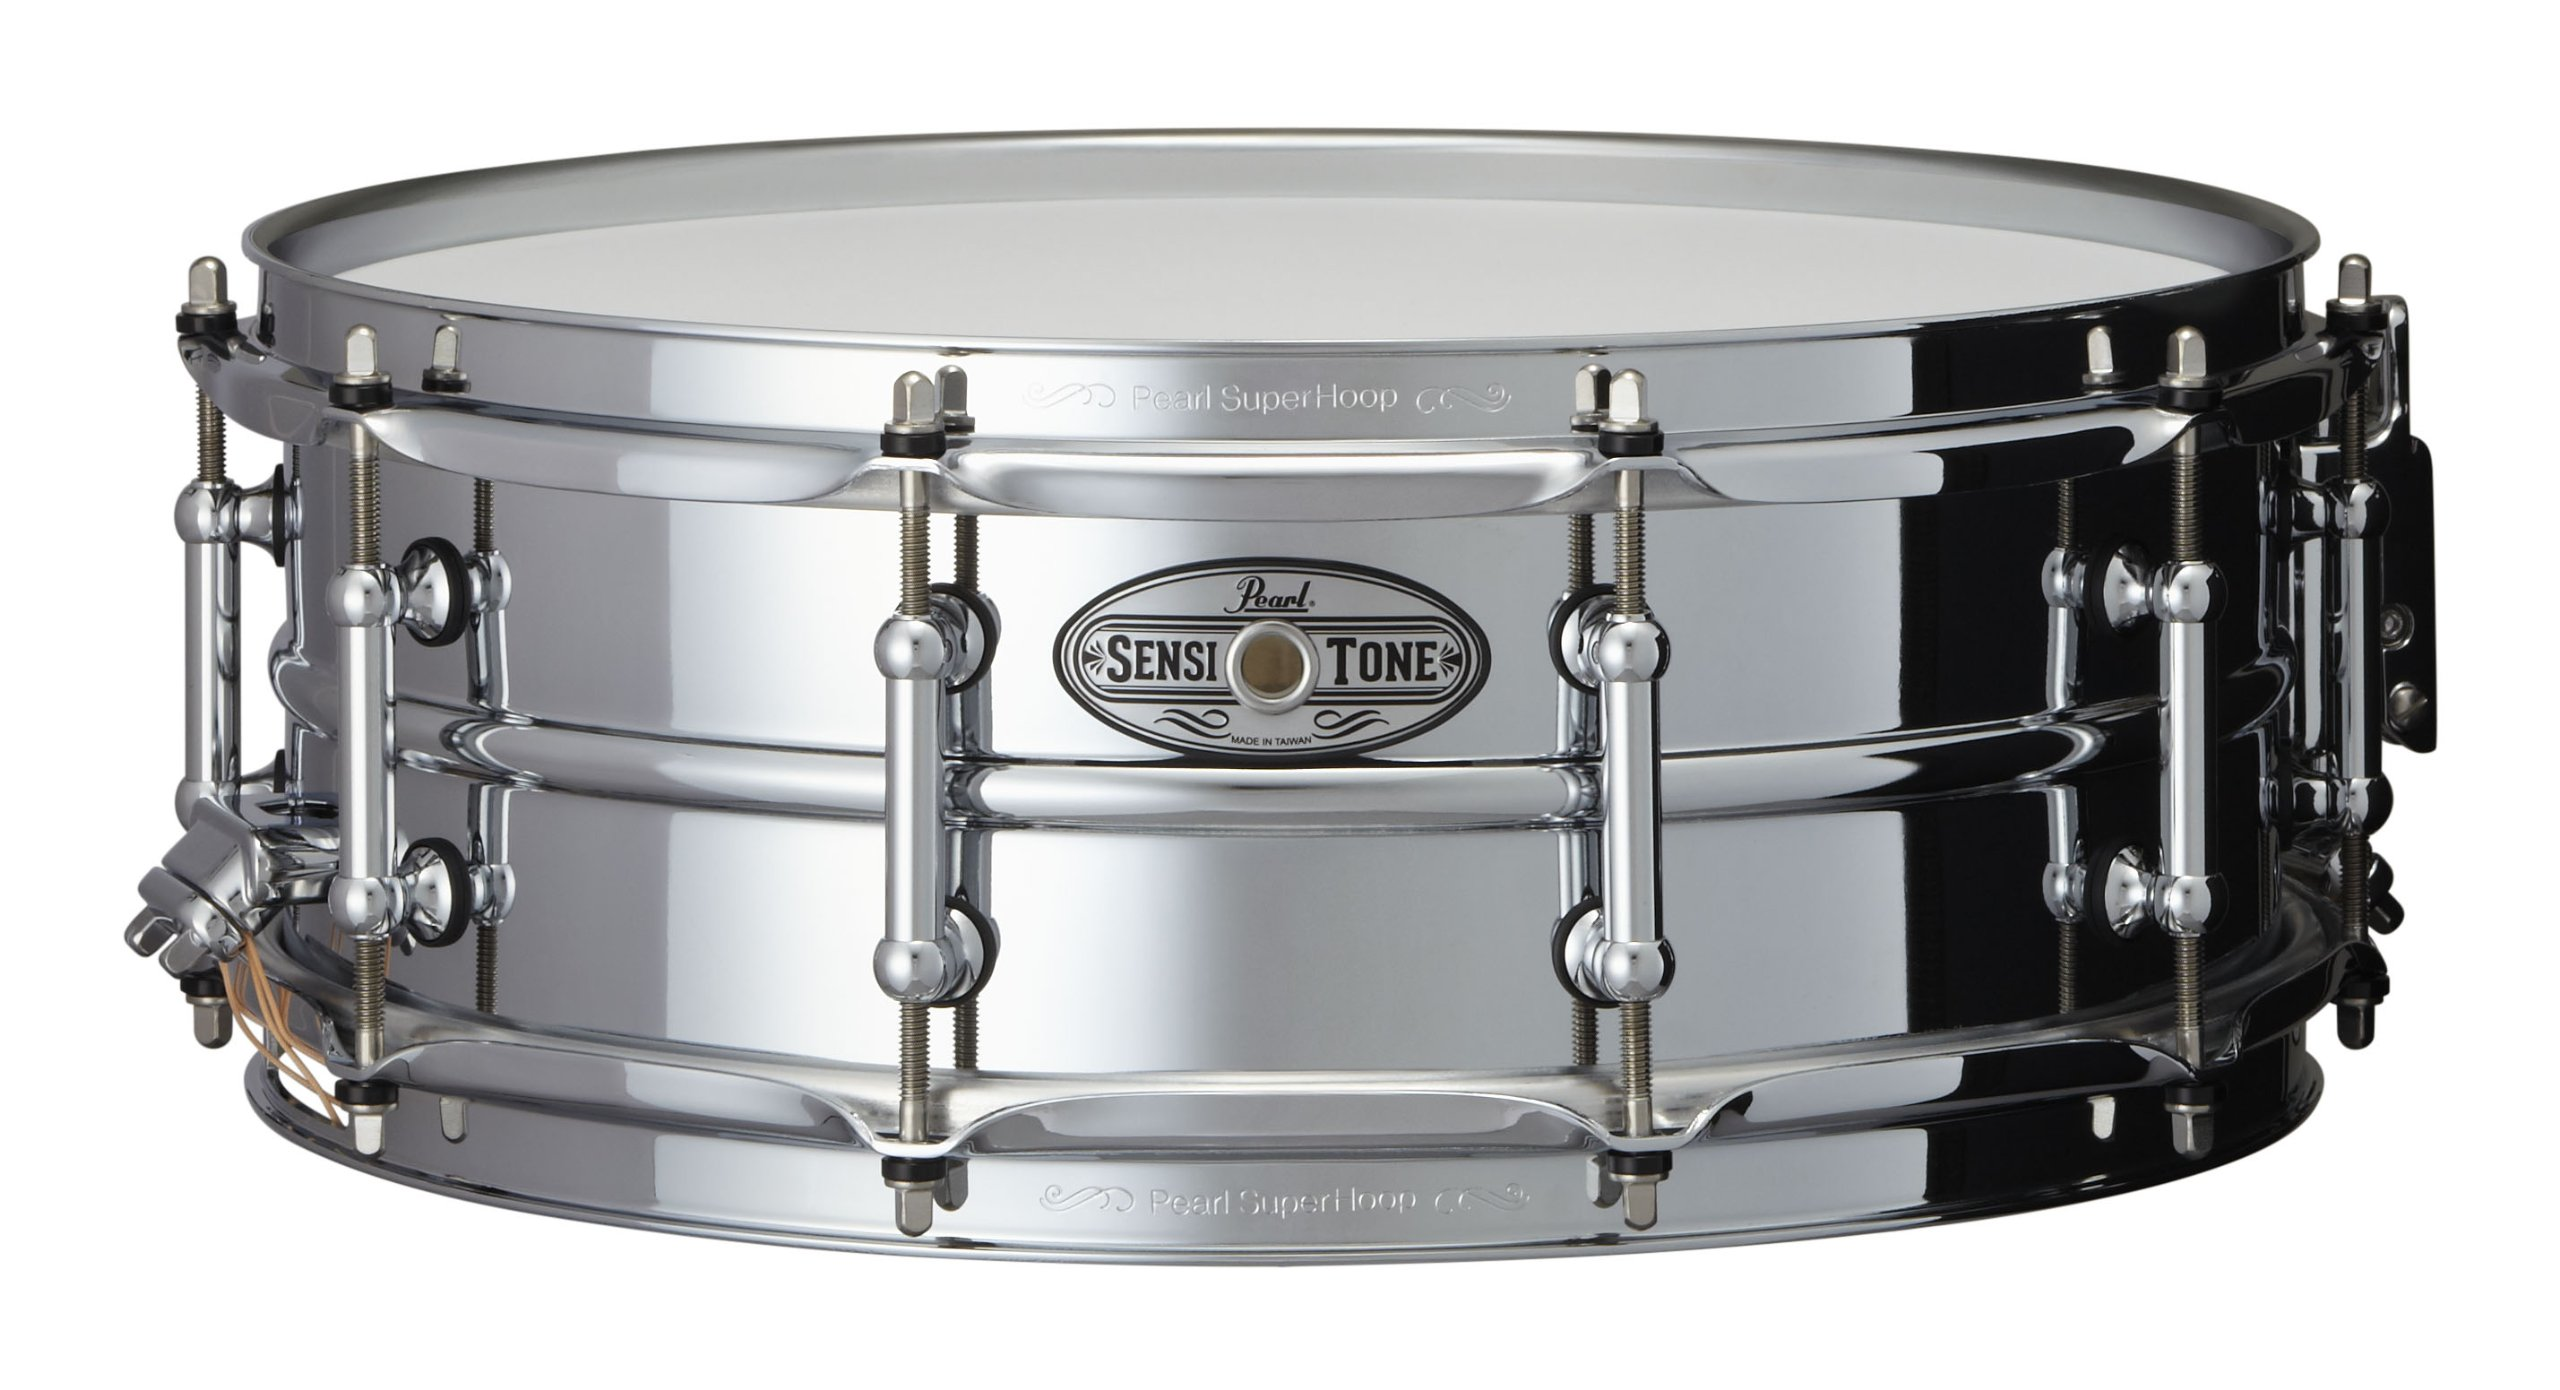 Pearl STA1450S 14 x 5 Inches Sensitone Snare Drum - Beaded Steel